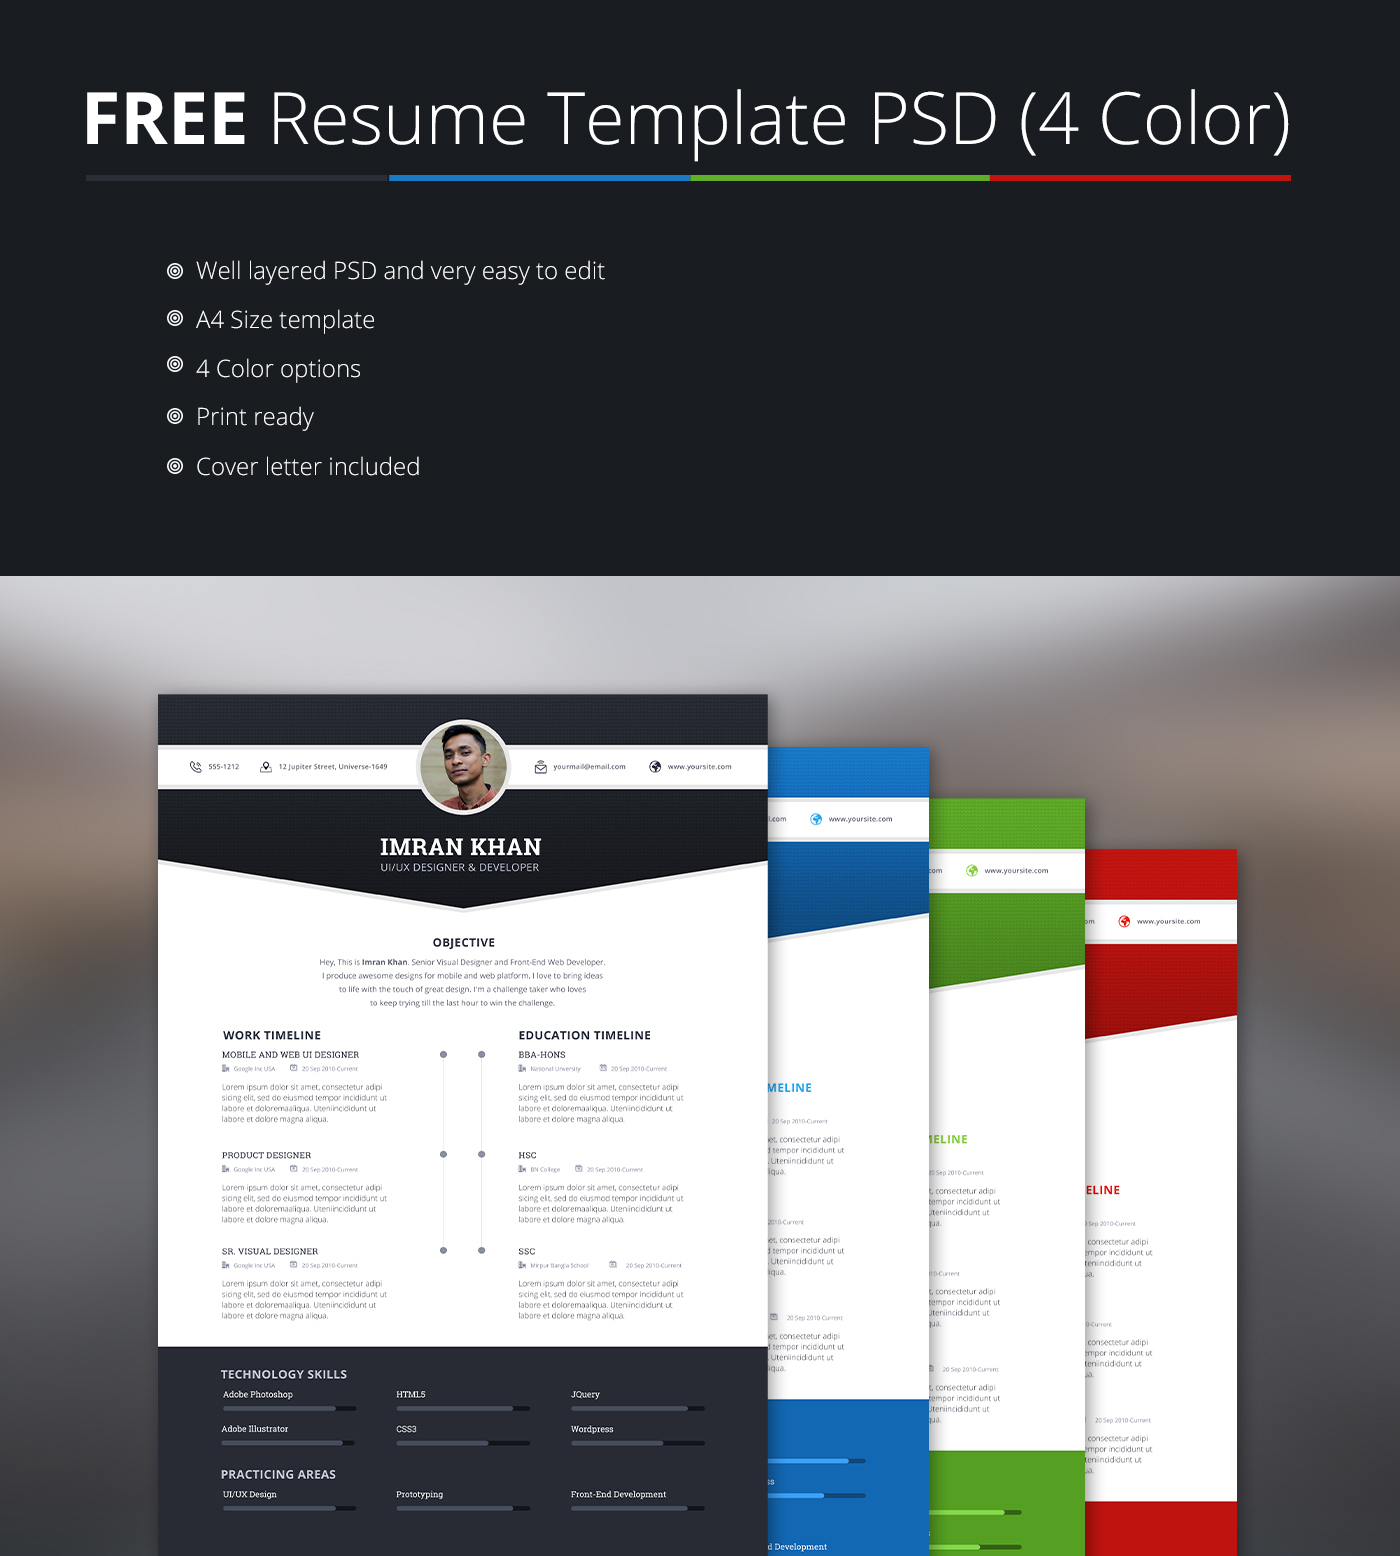 Free resume template psd 4 colors on behance yelopaper Choice Image